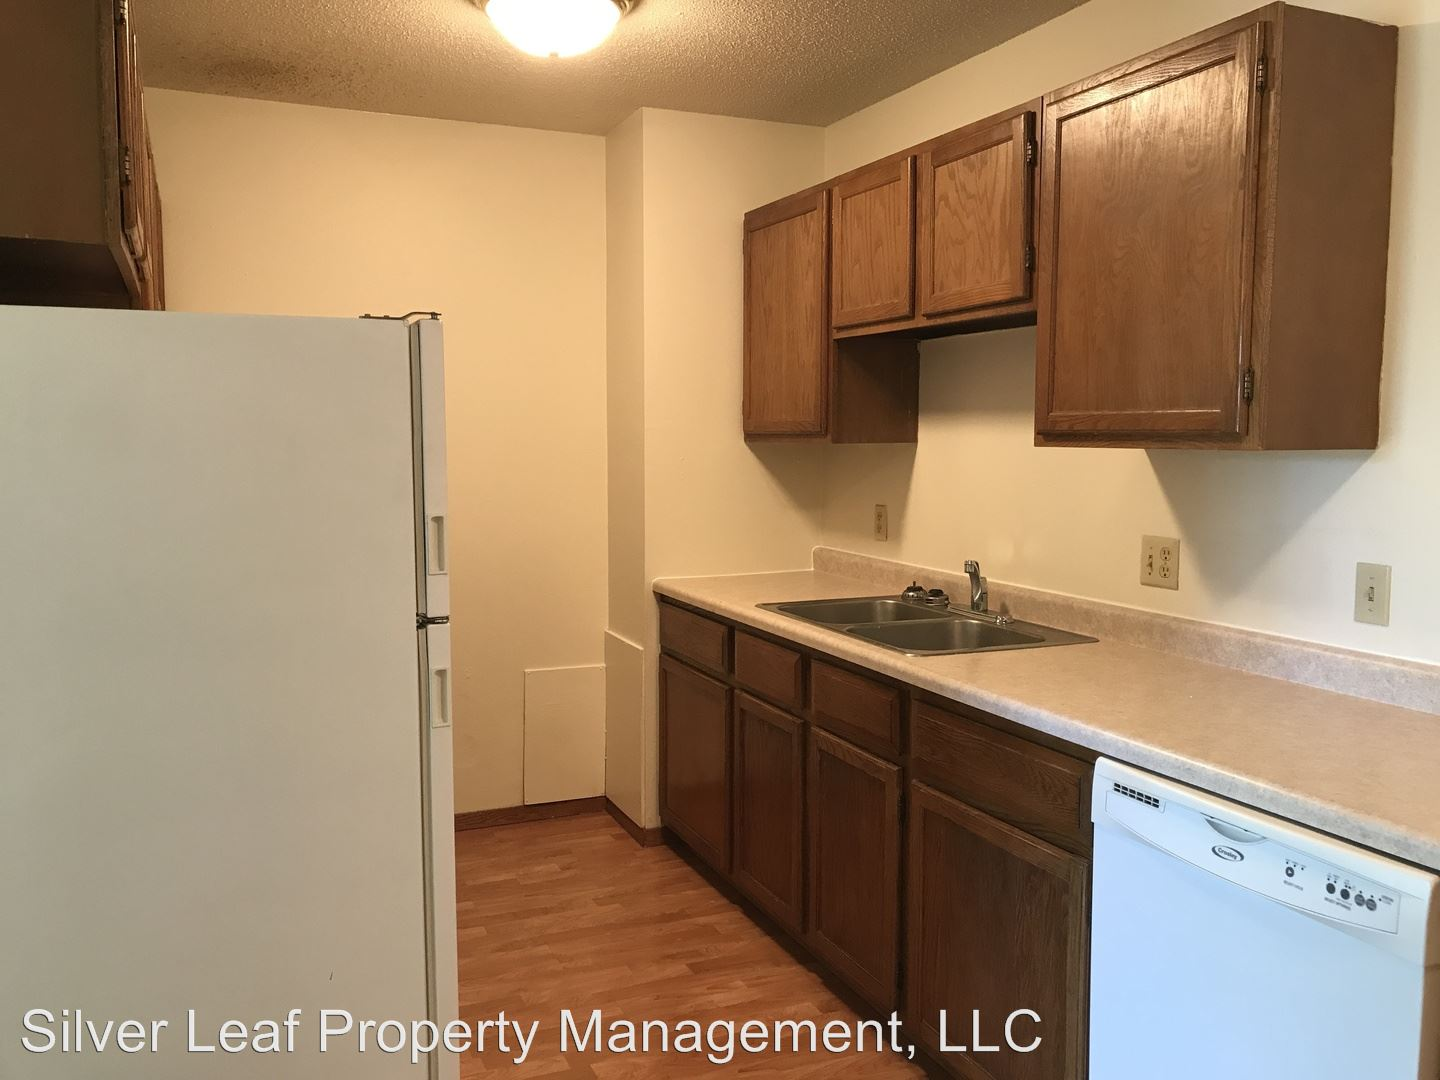 402, 408 5th Ave E, West Fargo, ND - $550